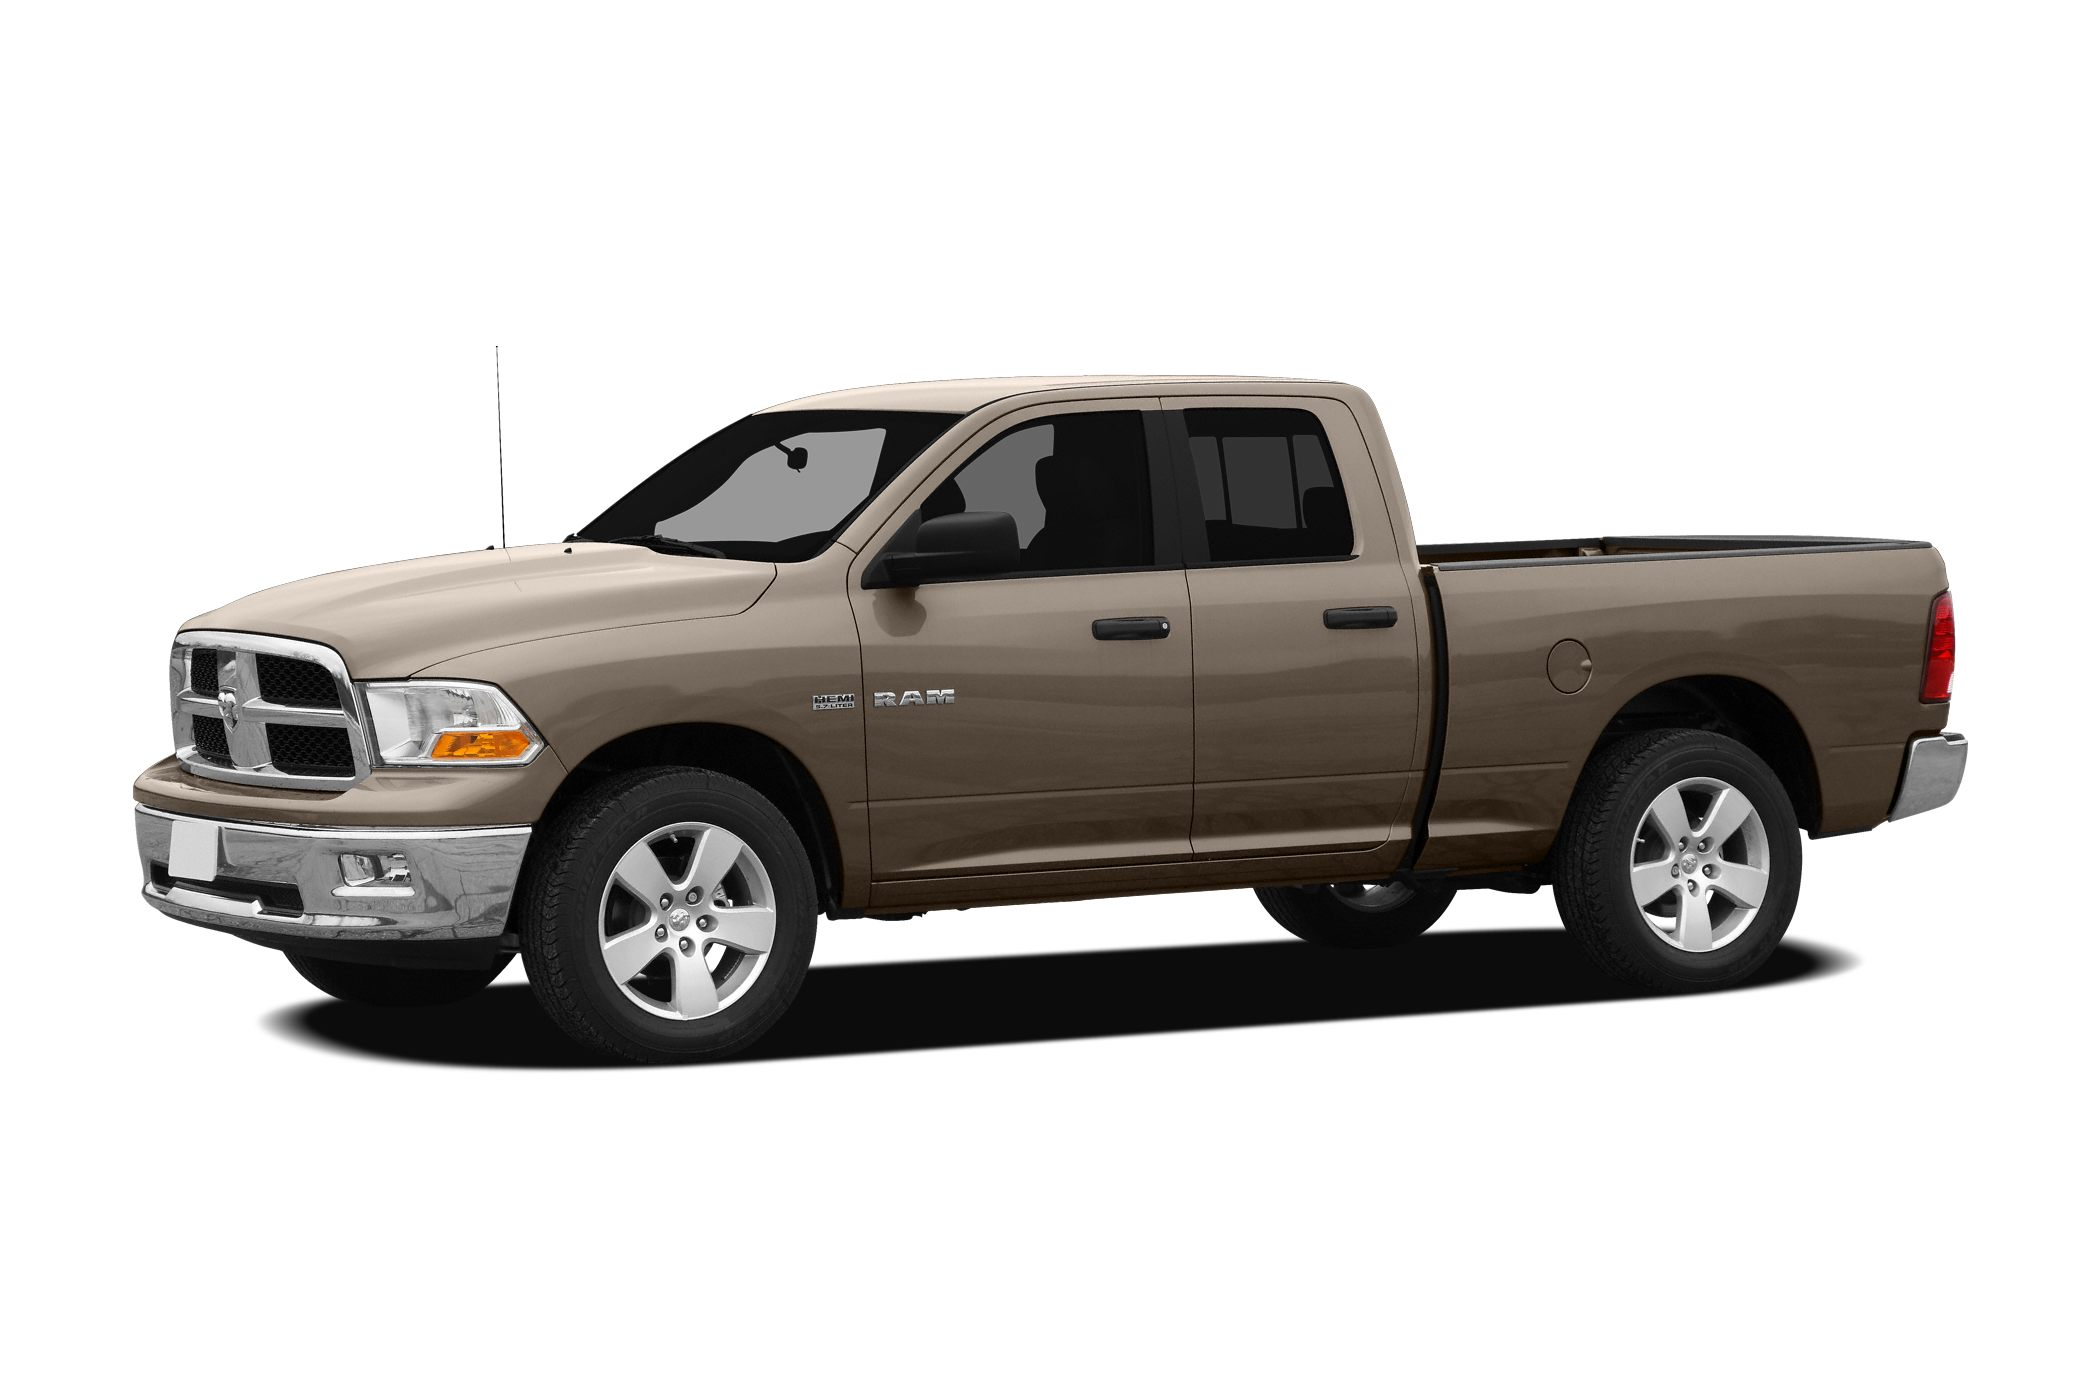 2009 Dodge Ram 1500 Laramie Thank you for visiting another one of Lake Keowee Chrysler Dodge Jeep